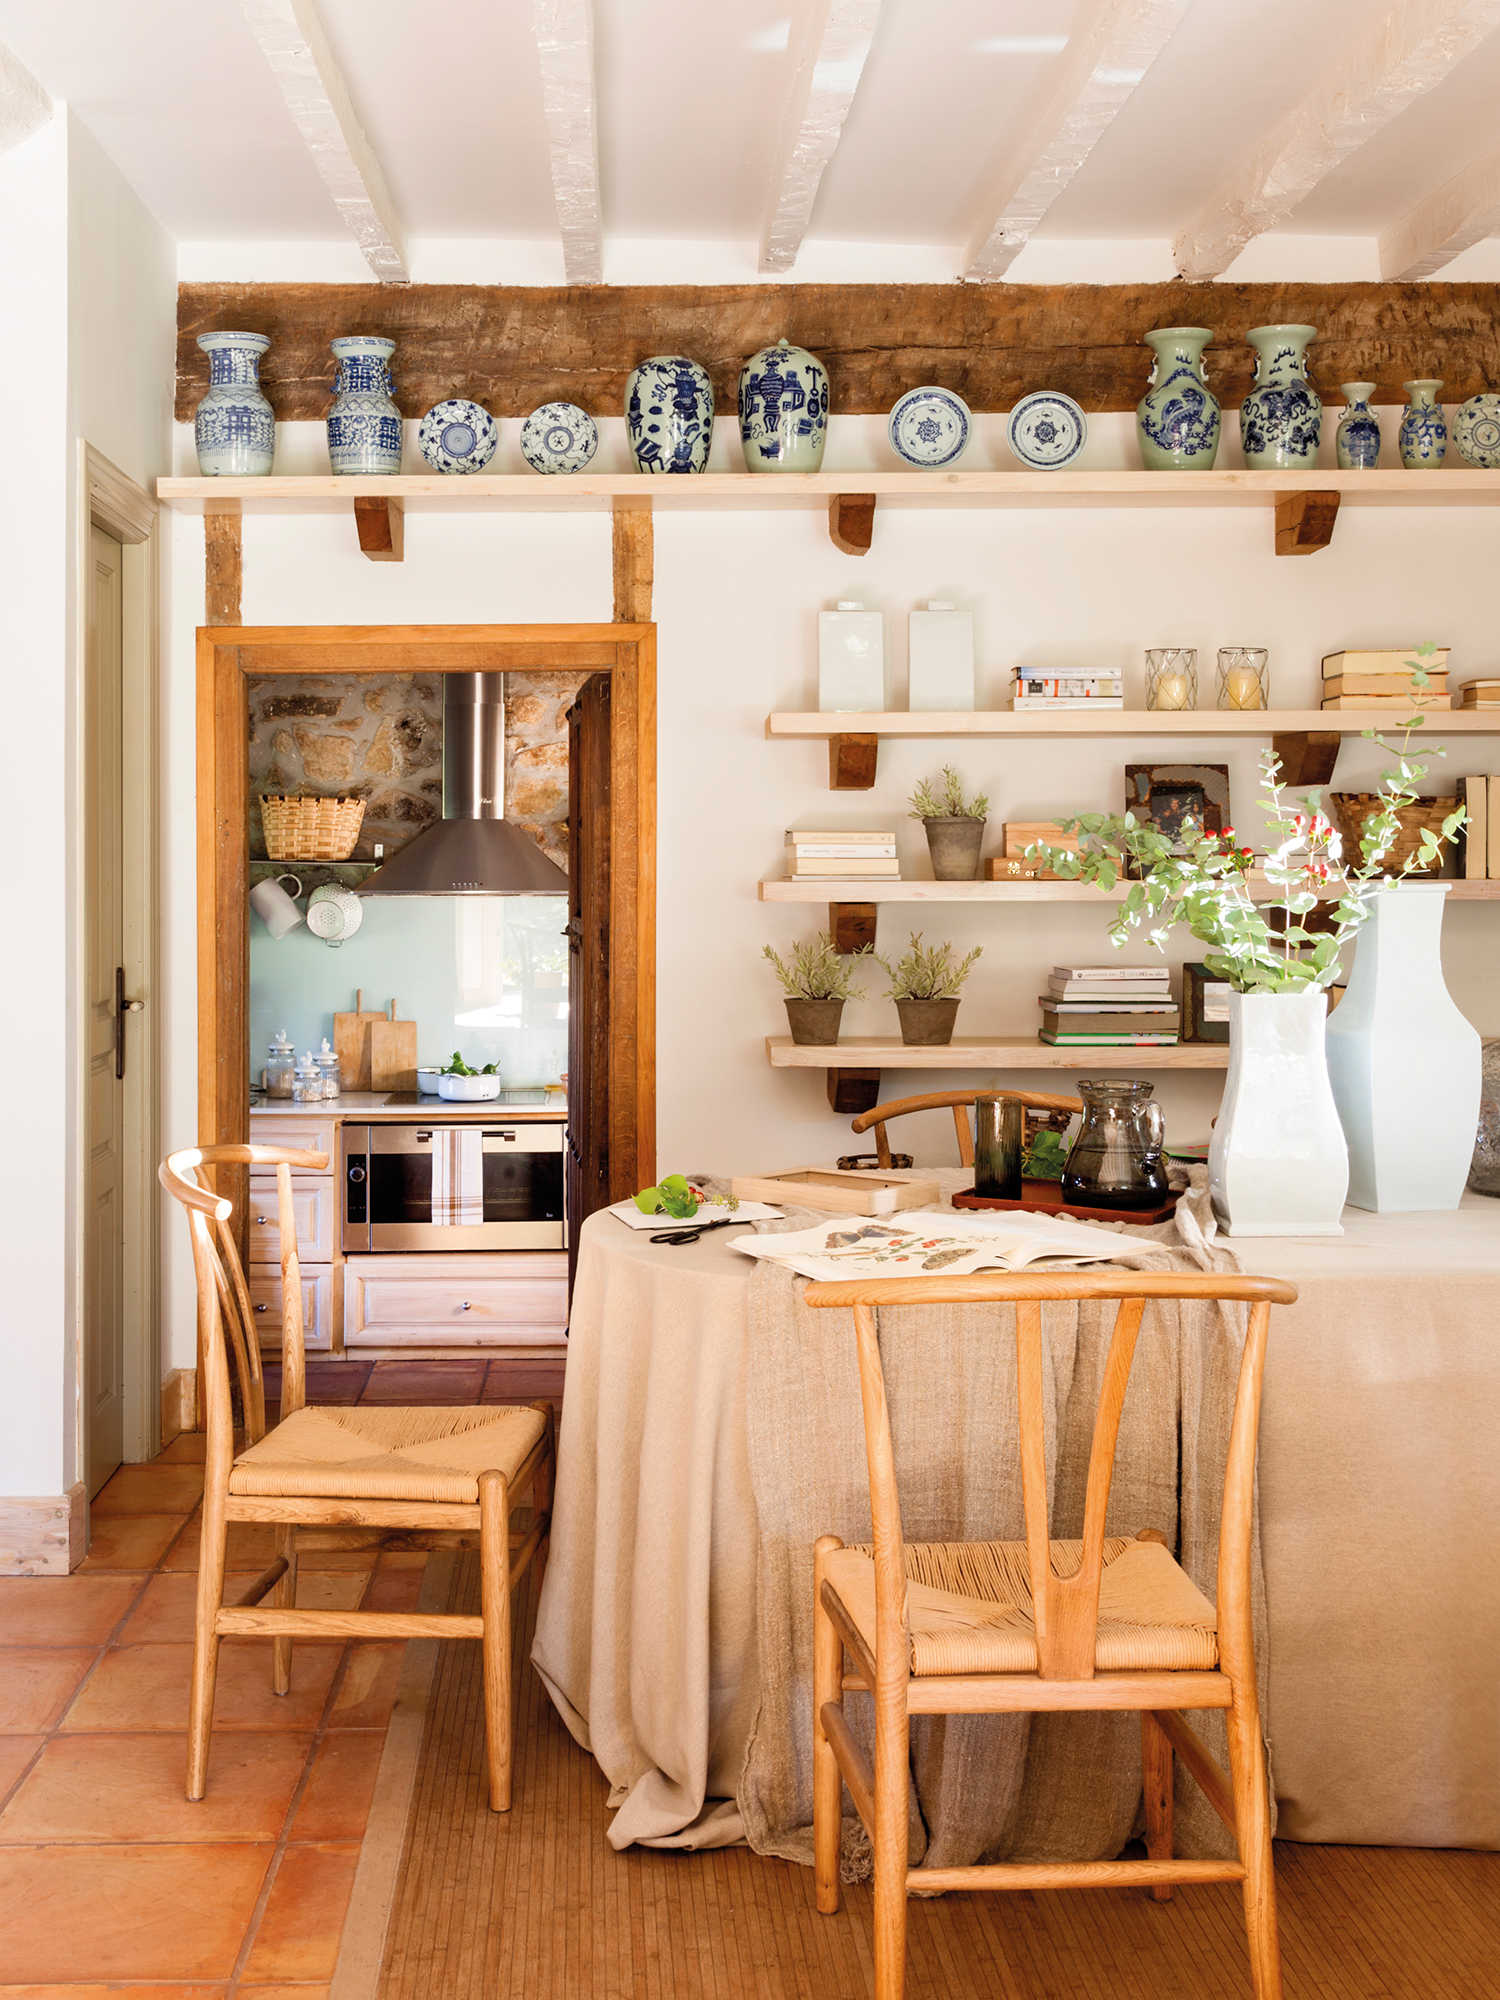 Comedor: 15 ideas para decorar sus paredes